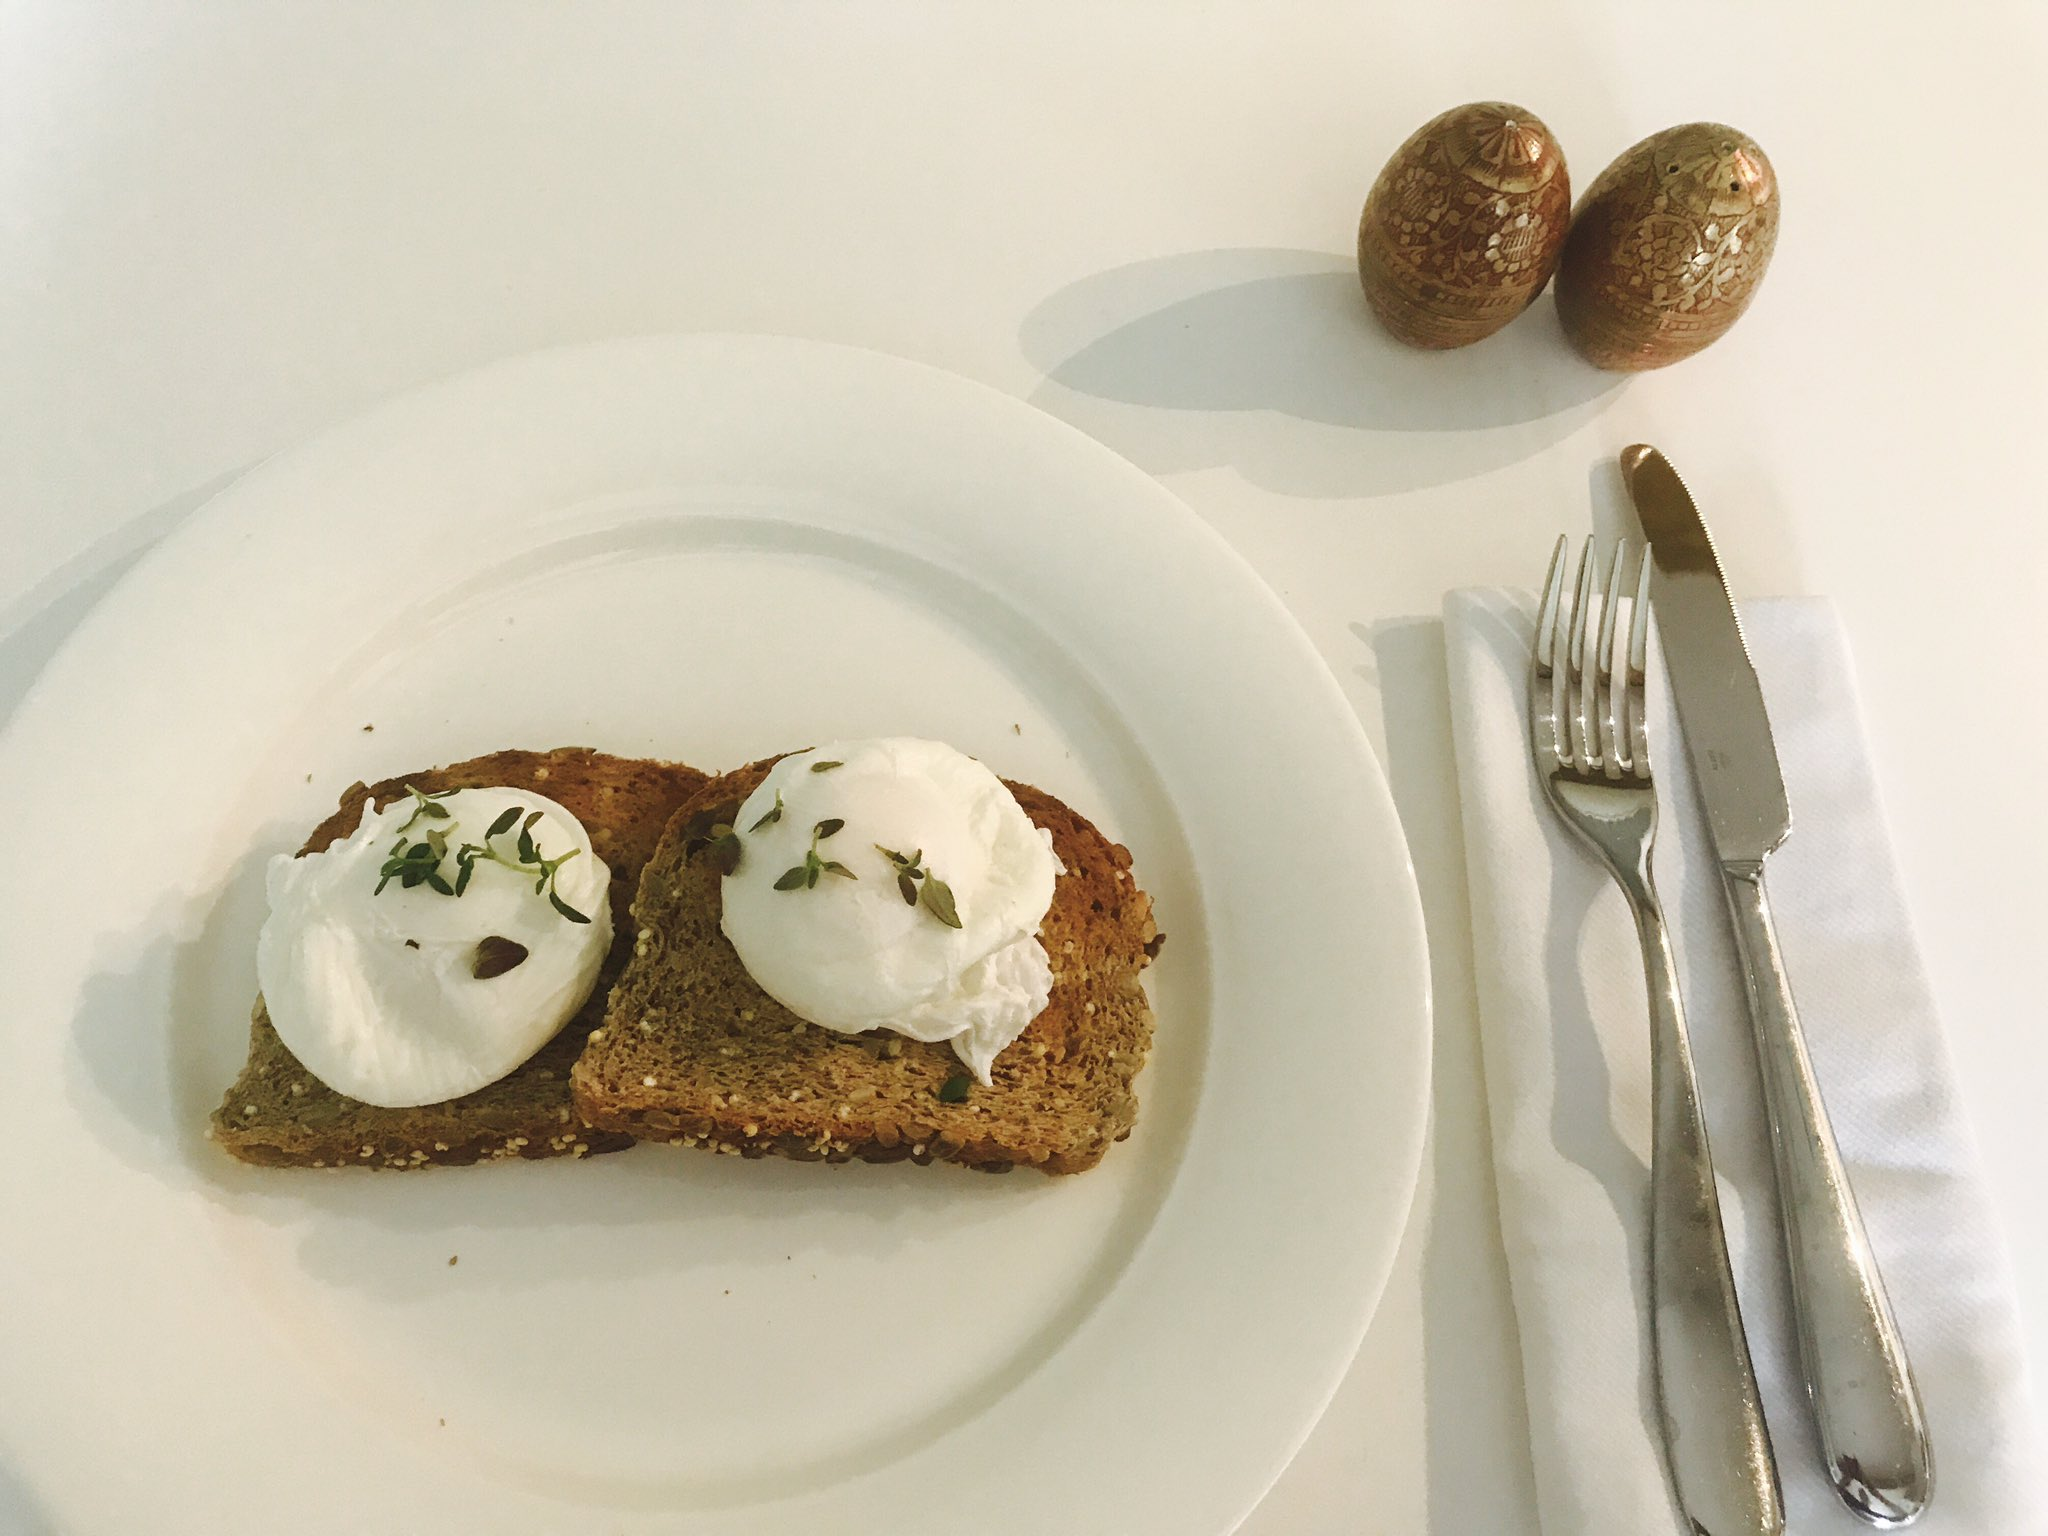 In case y'all were wondering - my poached eggs bring all the boys to the yard... https://t.co/oMjxw7h6sY